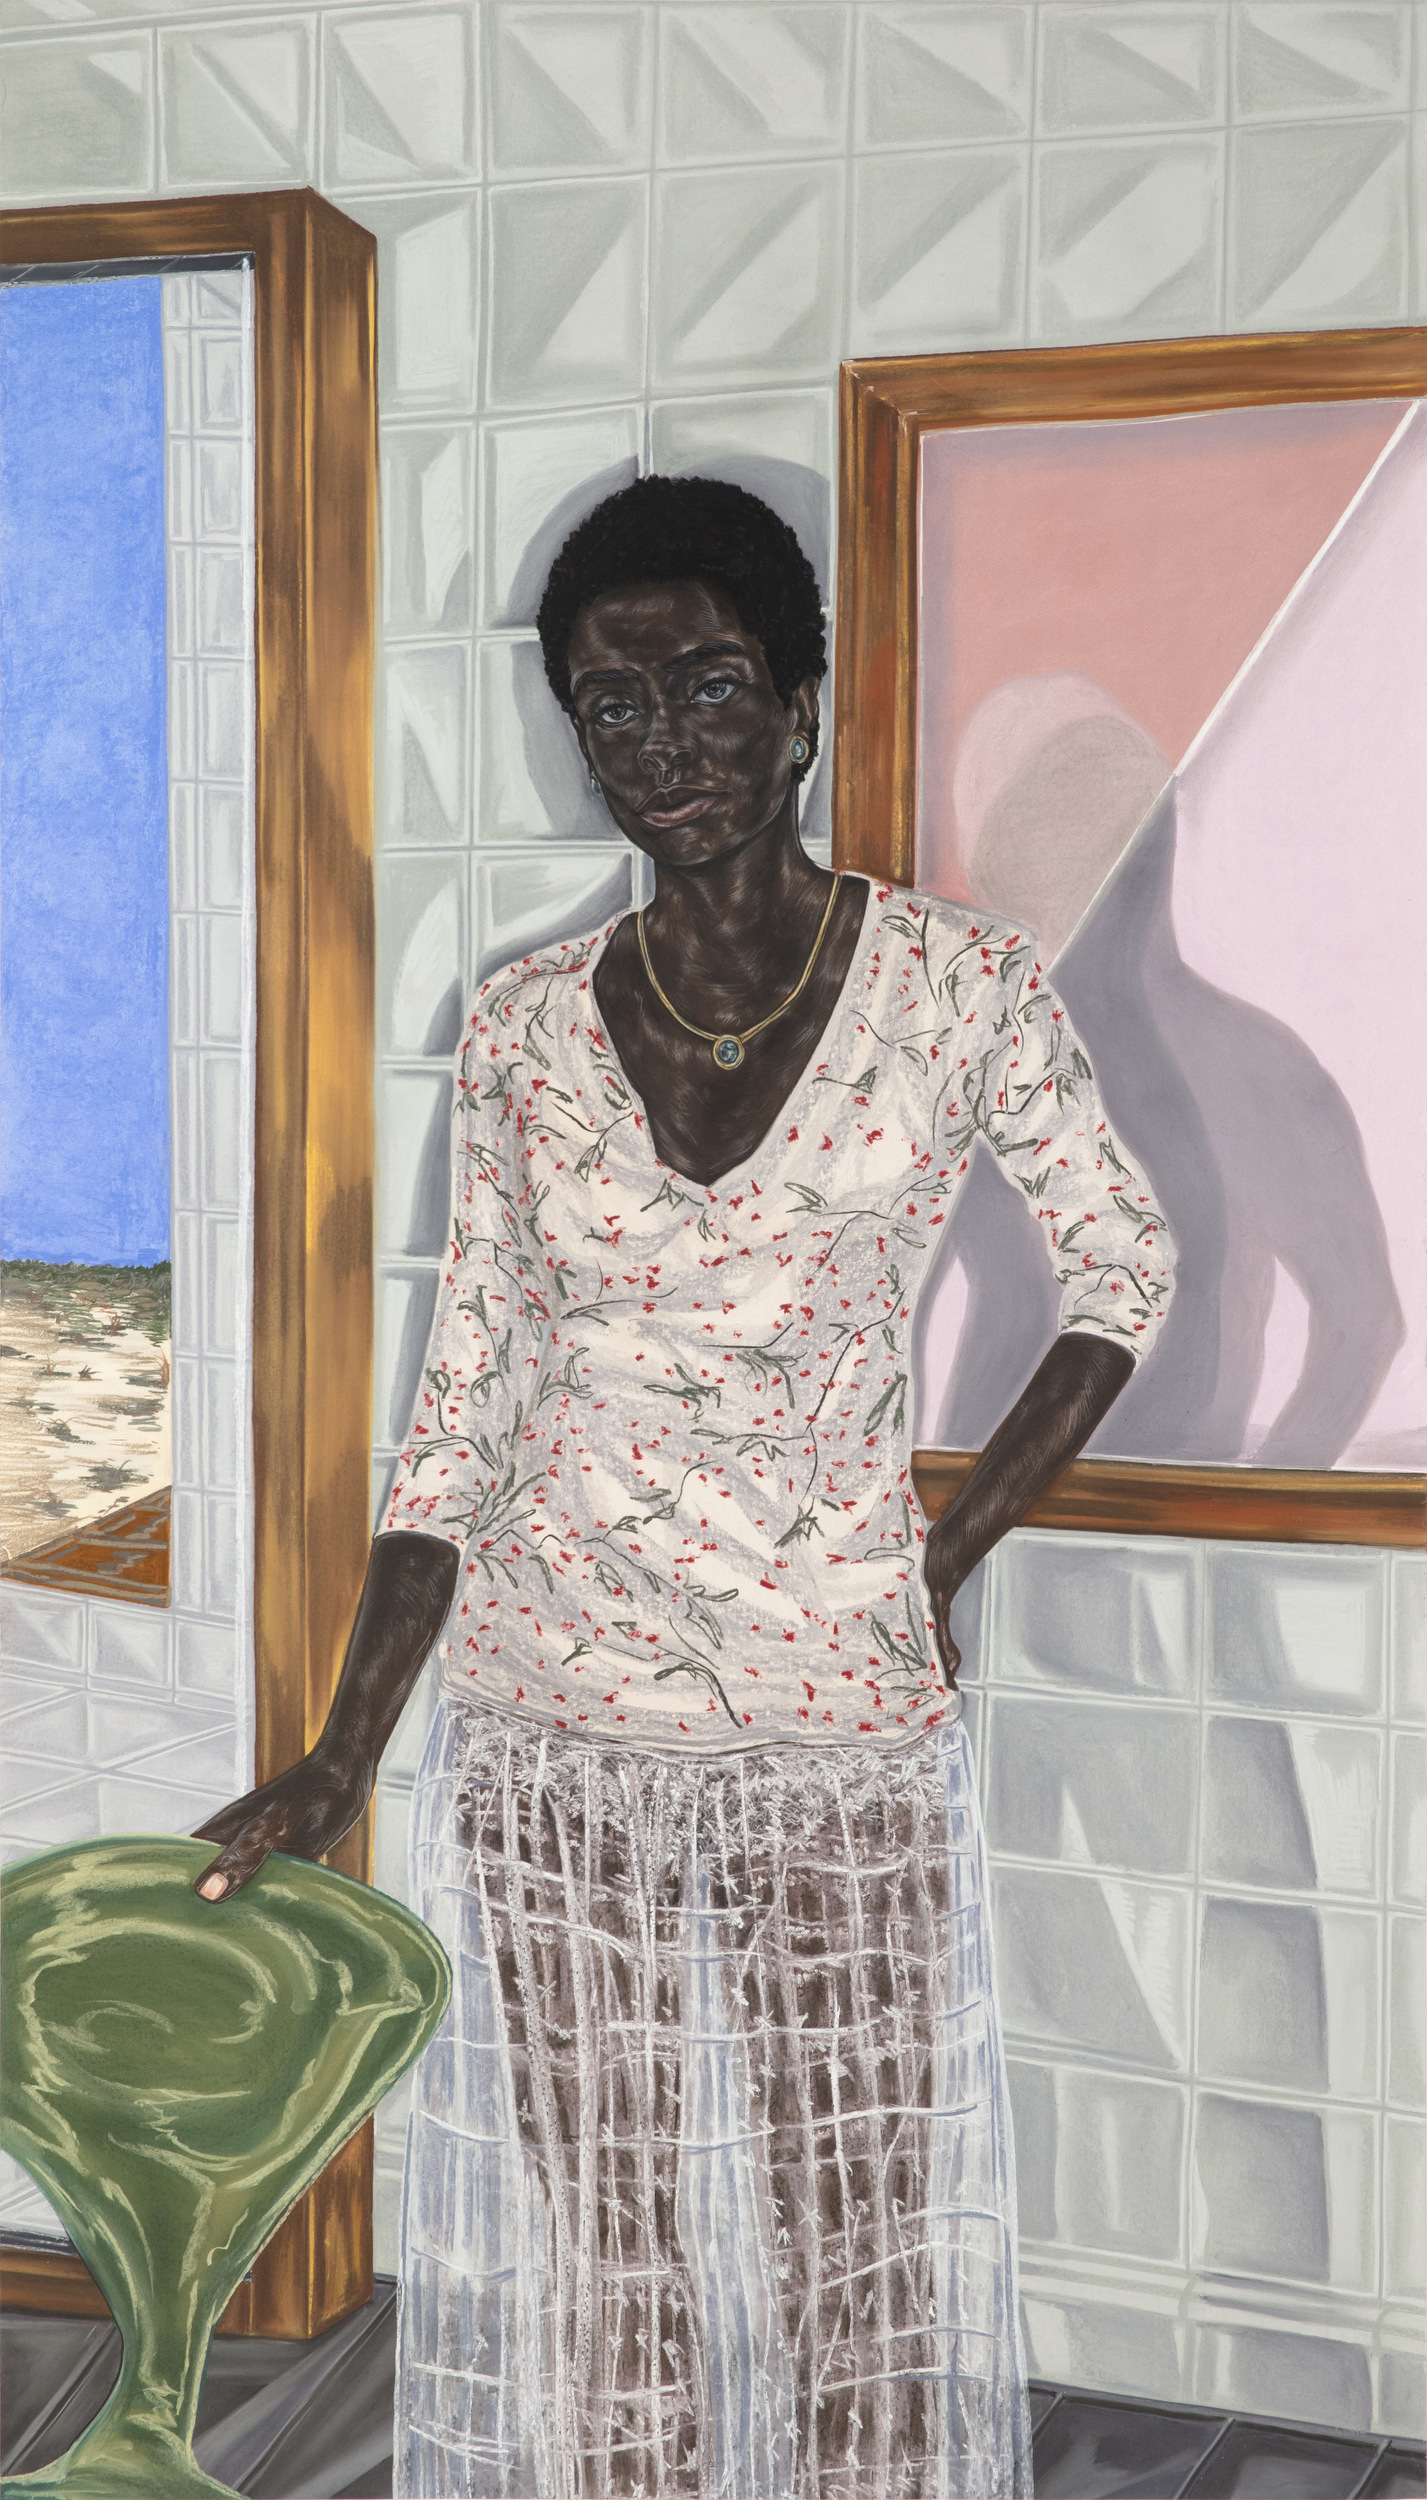 Toyin Ojih Odutola.  Pregnant , 2017. Charcoal, pastel and pencil on paper, 74 1/2 x 42 inches. ©Toyin Ojih Odutola.  Courtesy of the artist and Jack Shainman Gallery, New York.